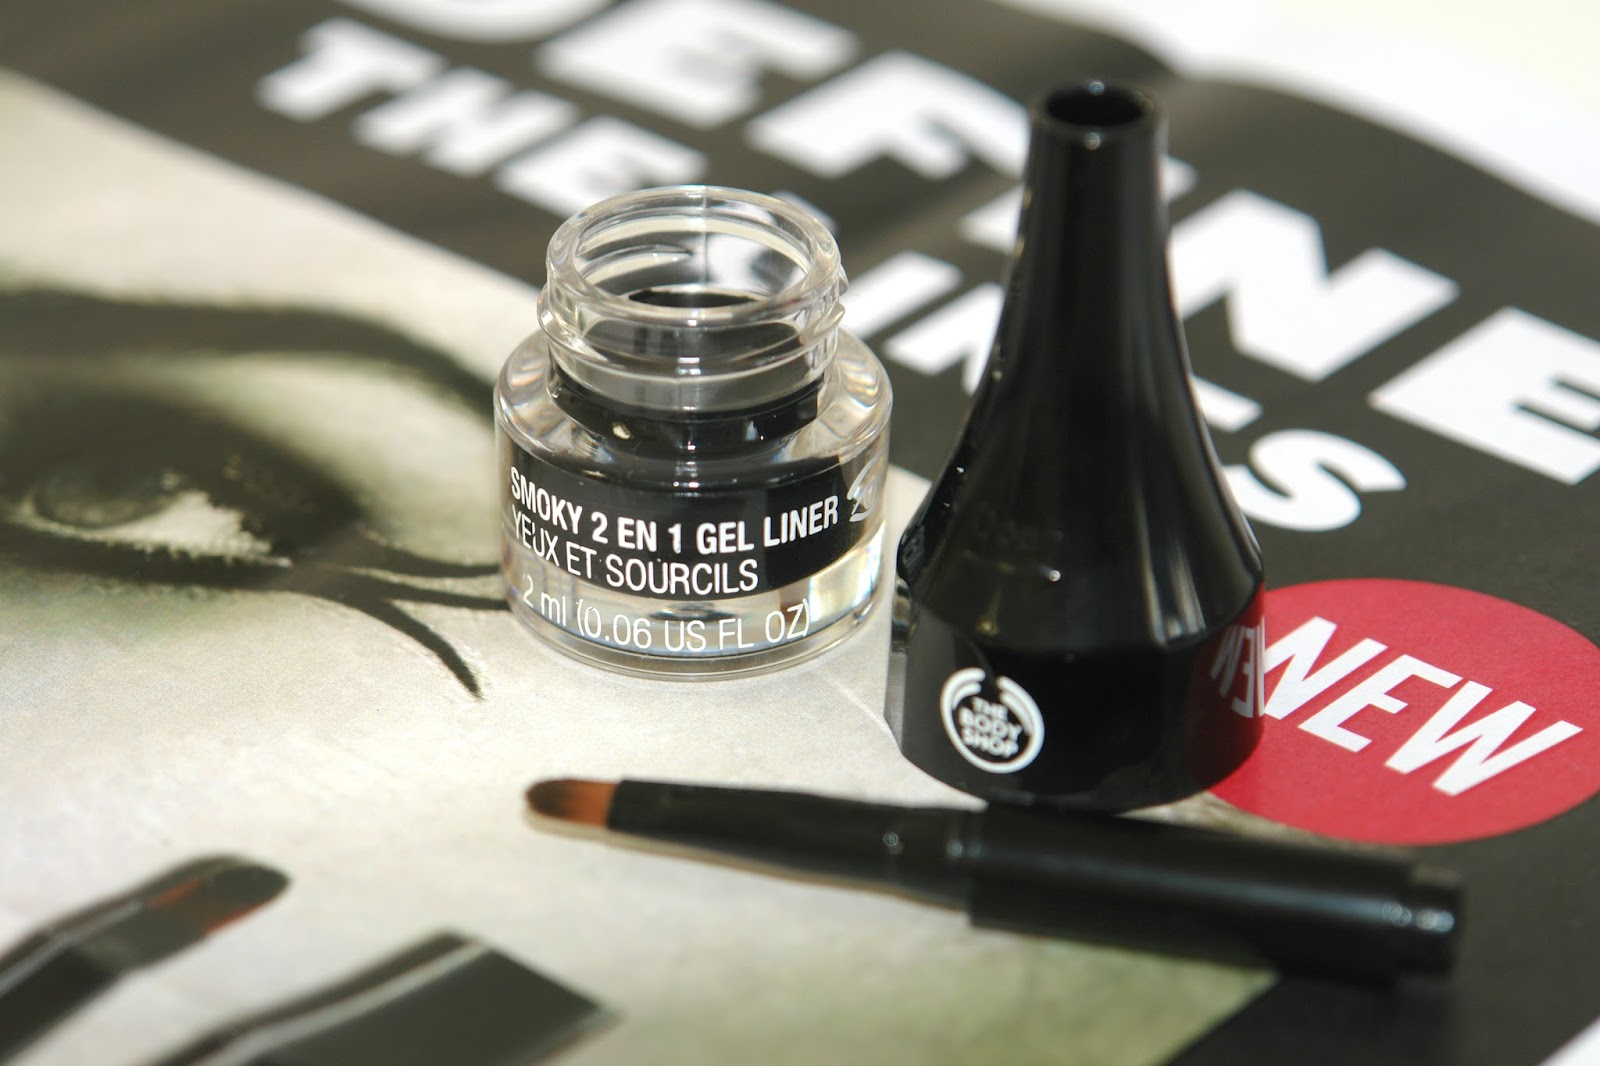 The Body Shop Eyes and Brows Gel Liner, beauty, eye liner, make up, review, The Body Shop, swatches, UK blog, blogger, The Body Shop Smoky 2 in 1 Gel Liner